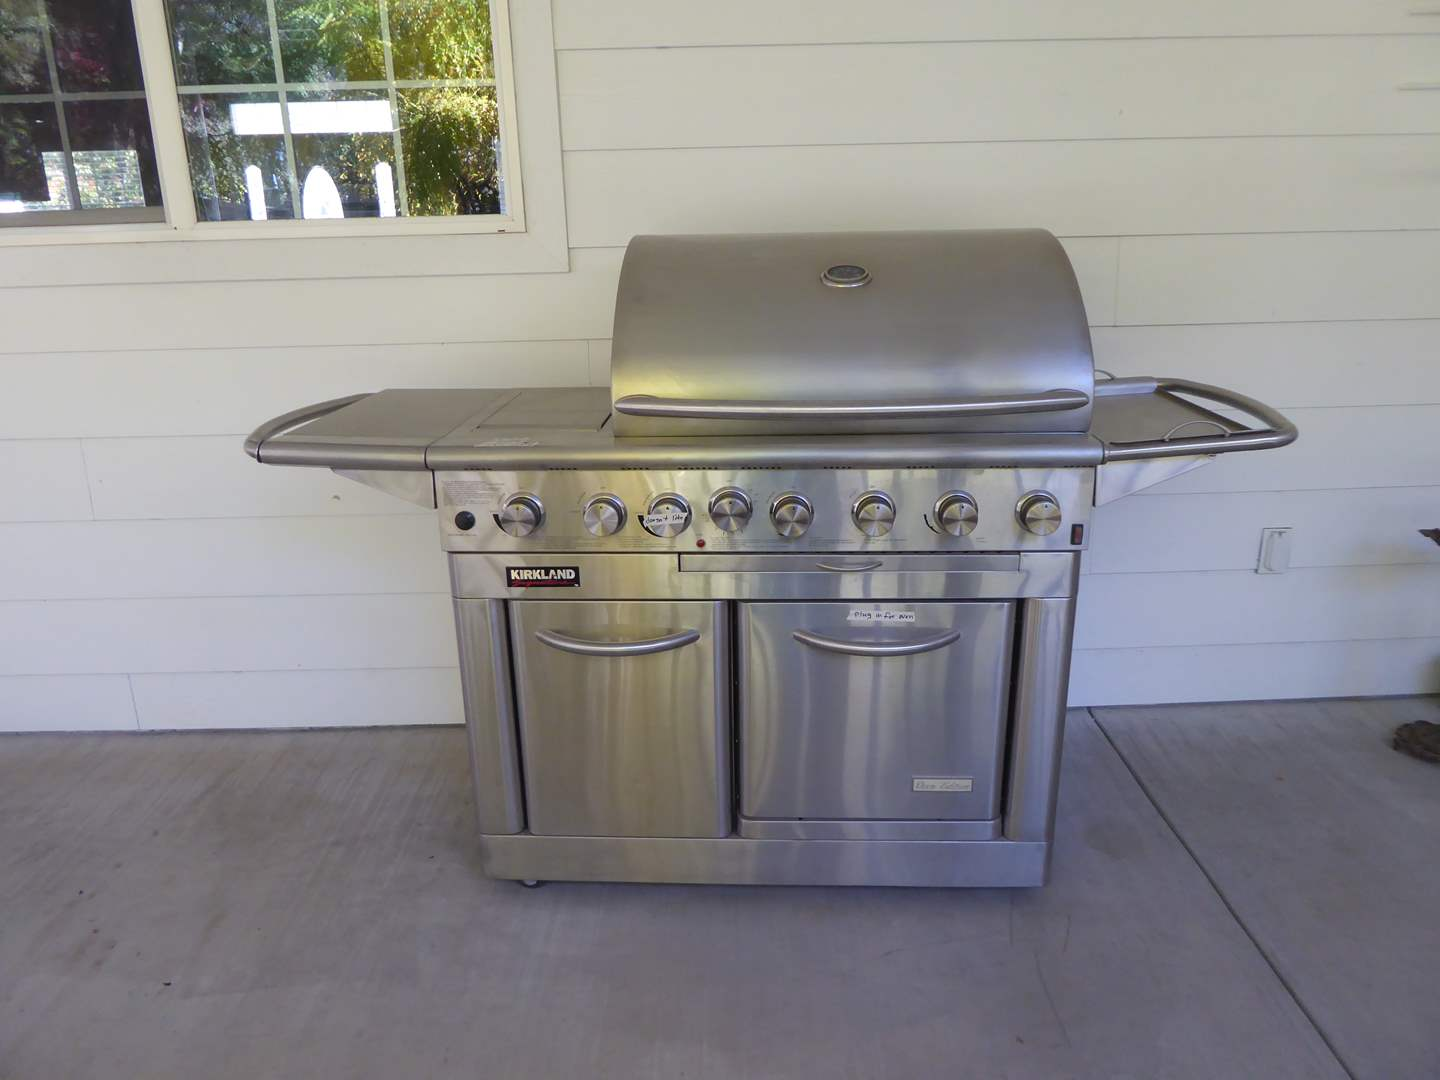 Lot # 107 - Kirkland Grill (Oven Edition) Propane W/Electric Oven (main image)